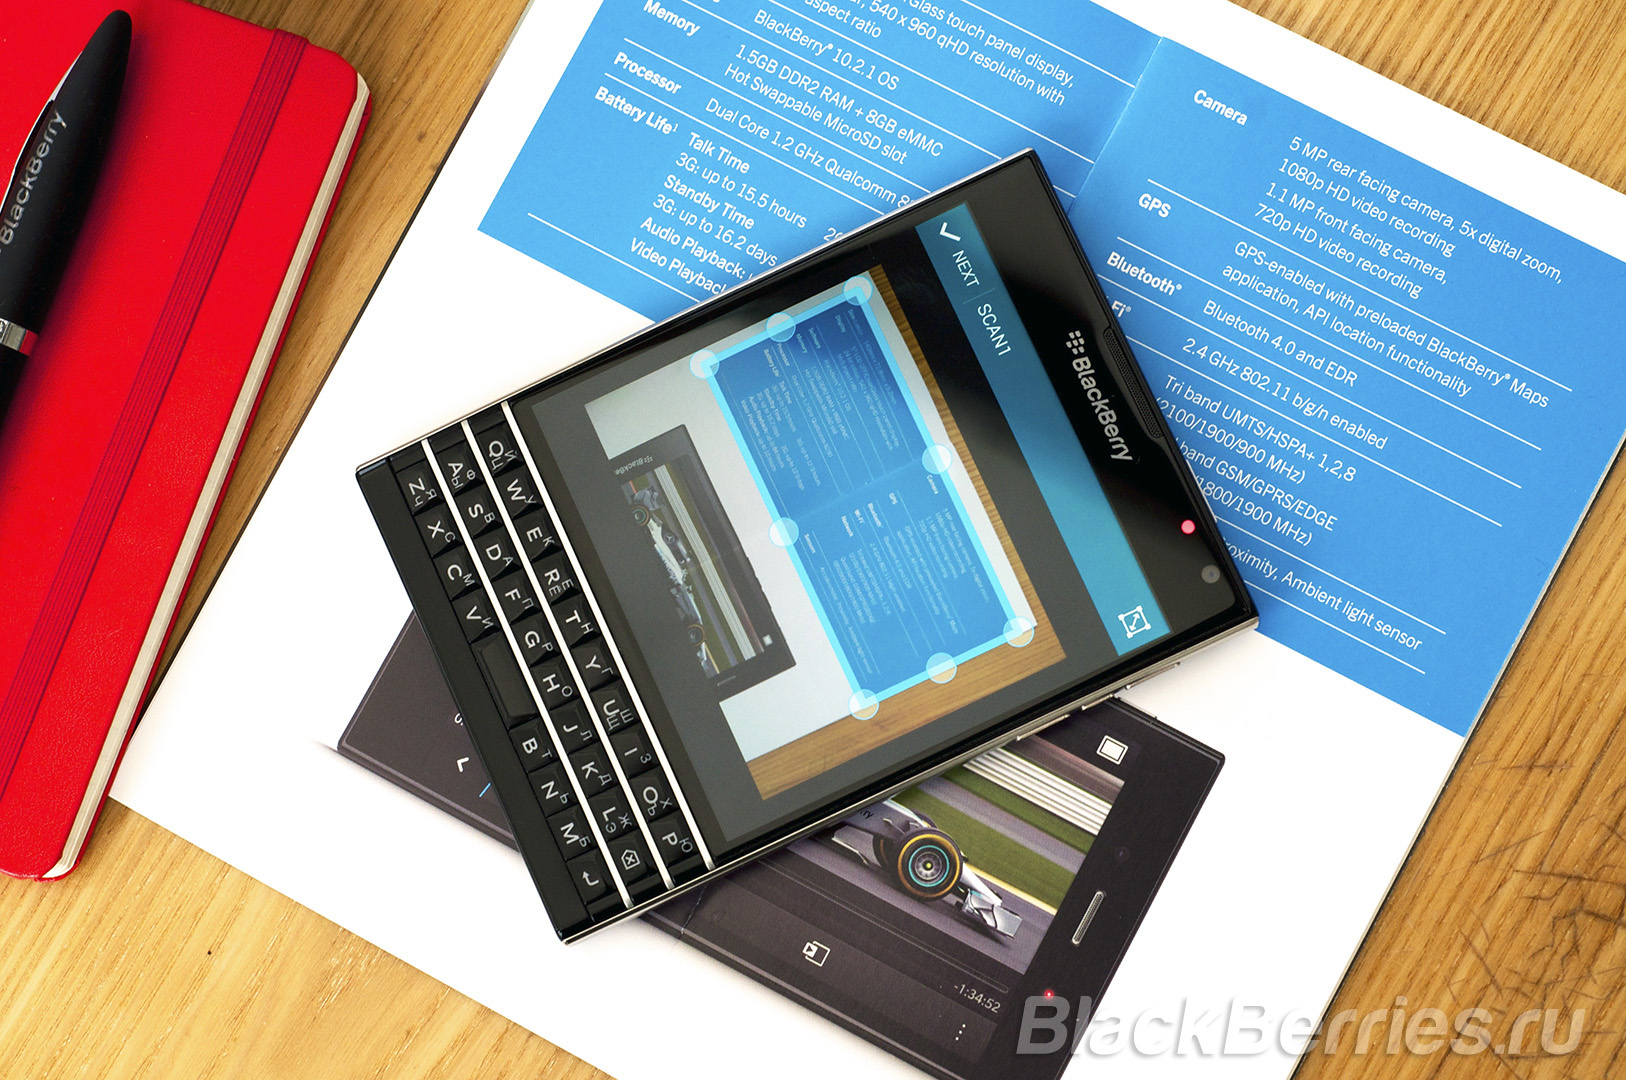 BlackBerry-Passport-App-Review-2-12